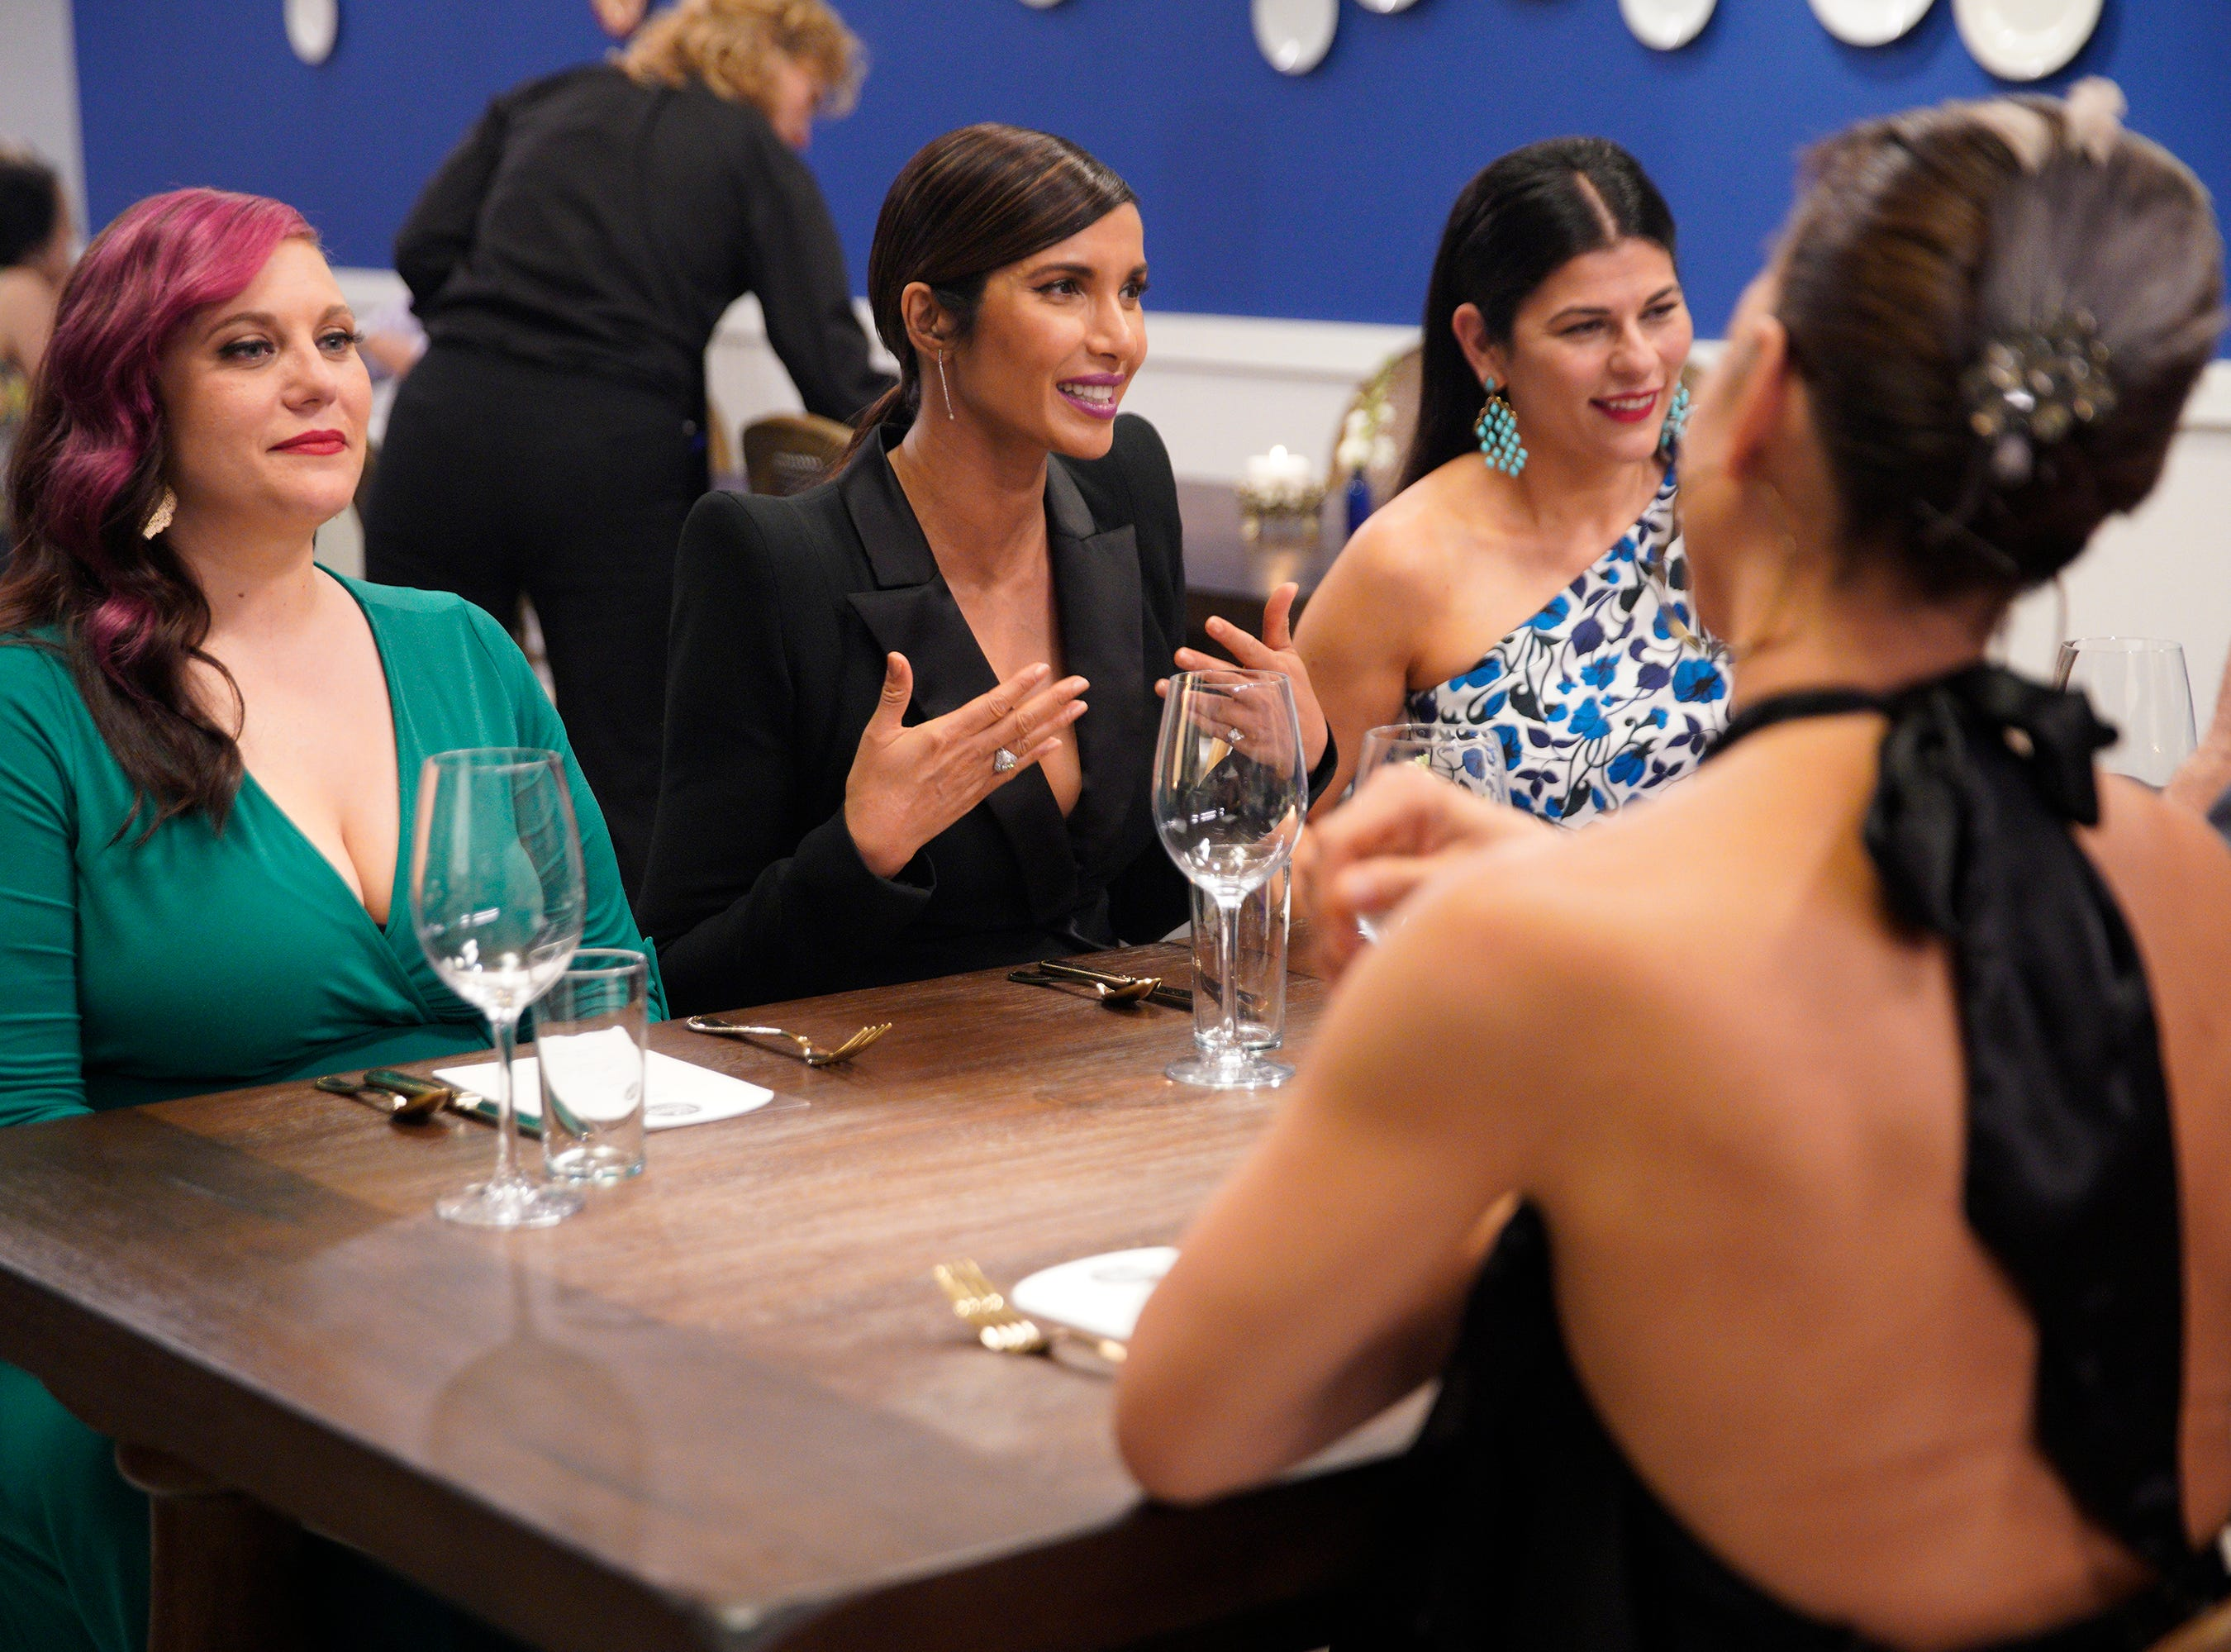 """(From left to right): Karen Akunowicz, Padma Lakshmi and Nilou Motame on episode 5 of Bravo's """"Top Chef"""" Kentucky."""